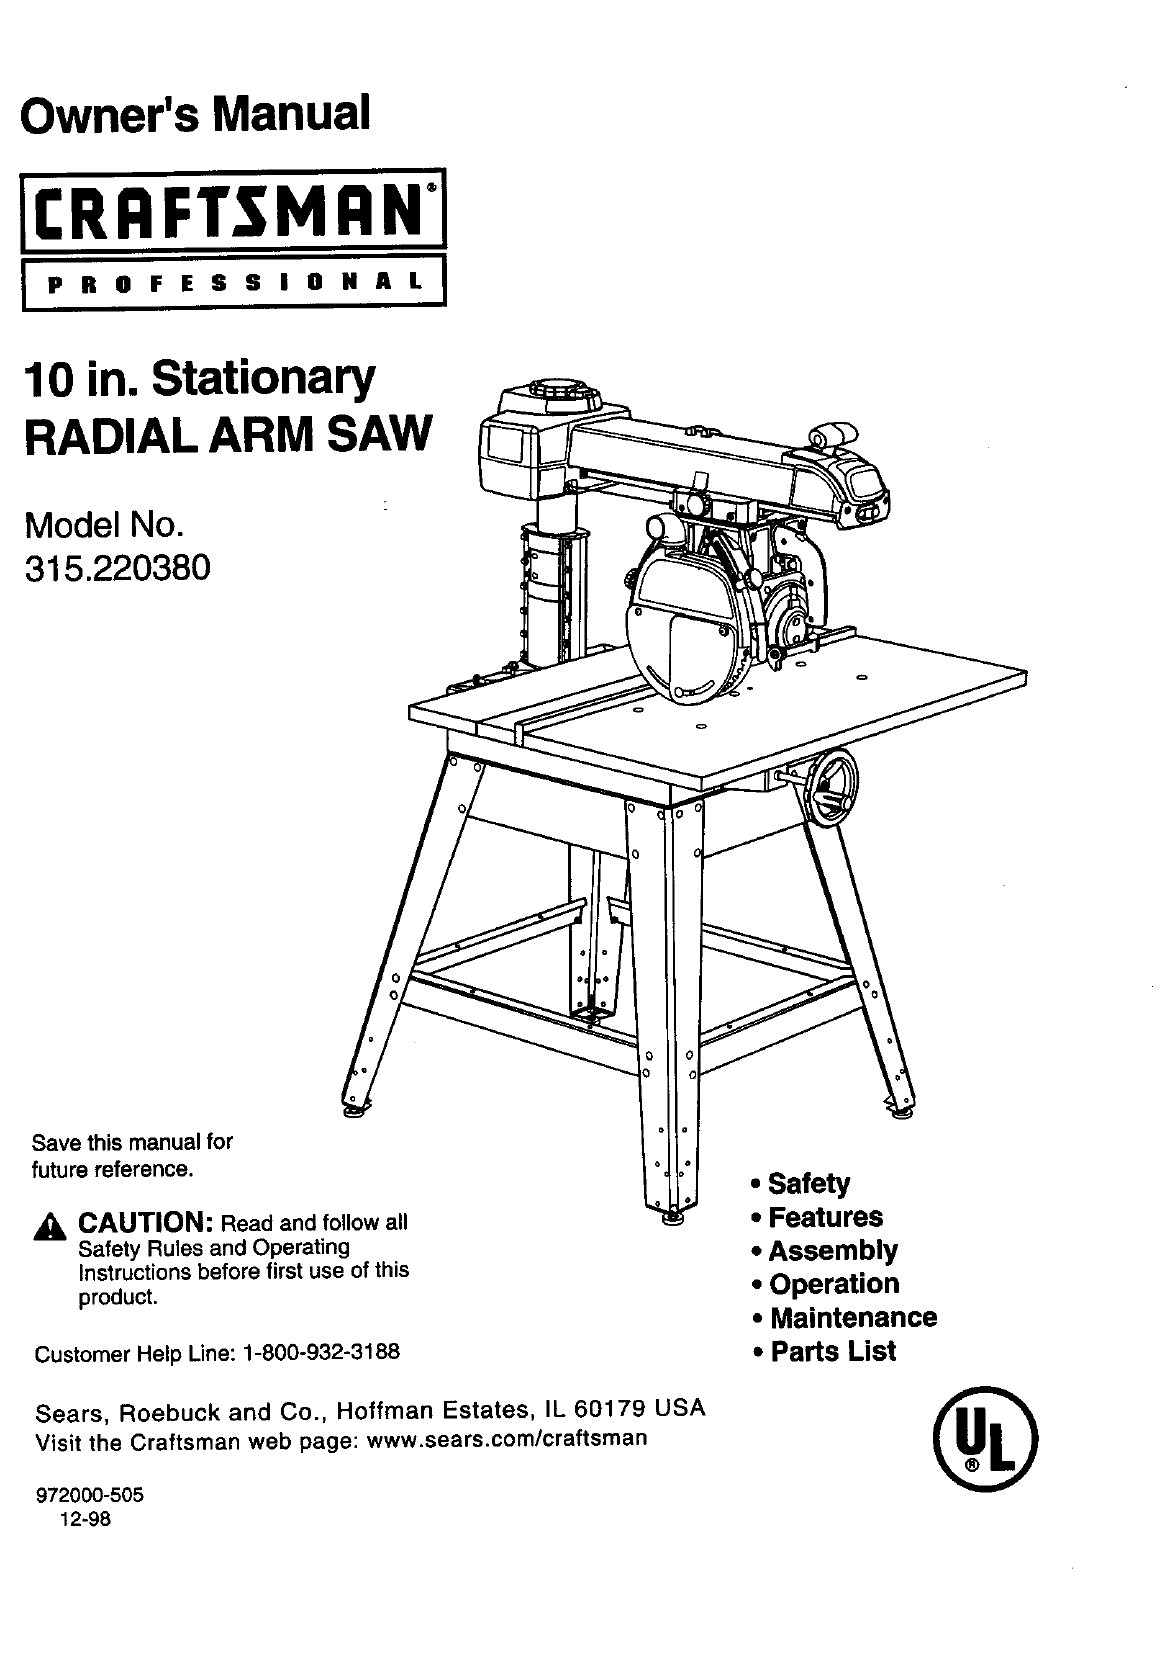 craftsman saw 315 22038 user guide manualsonline com rh powertool manualsonline com craftsman 10 inch table saw user manual craftsman circular saw user manual